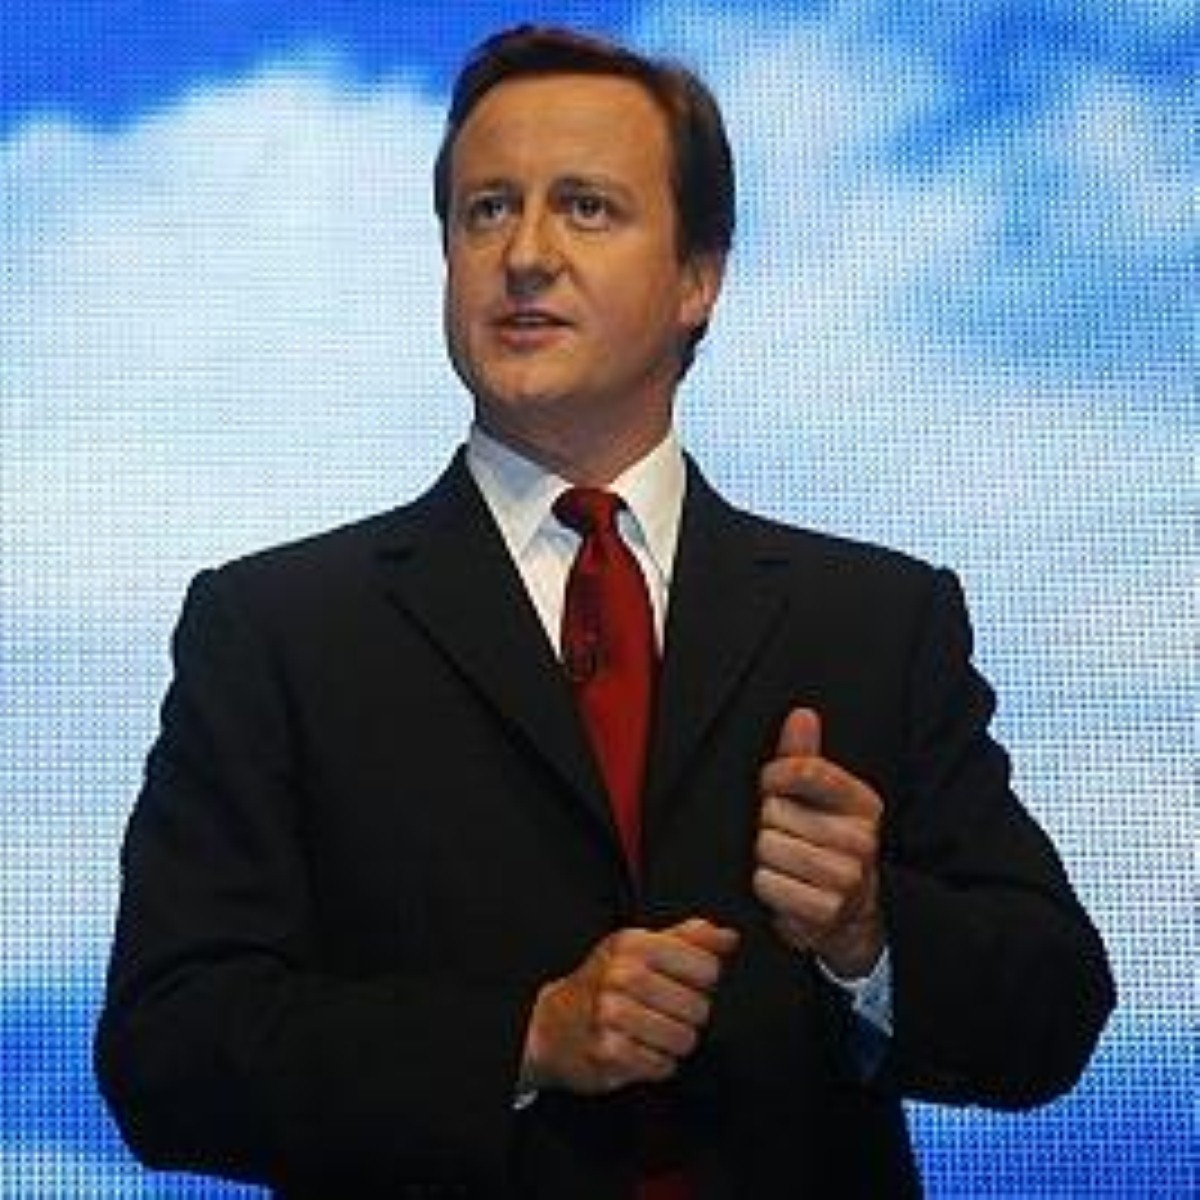 Cameron makes speech on family planning